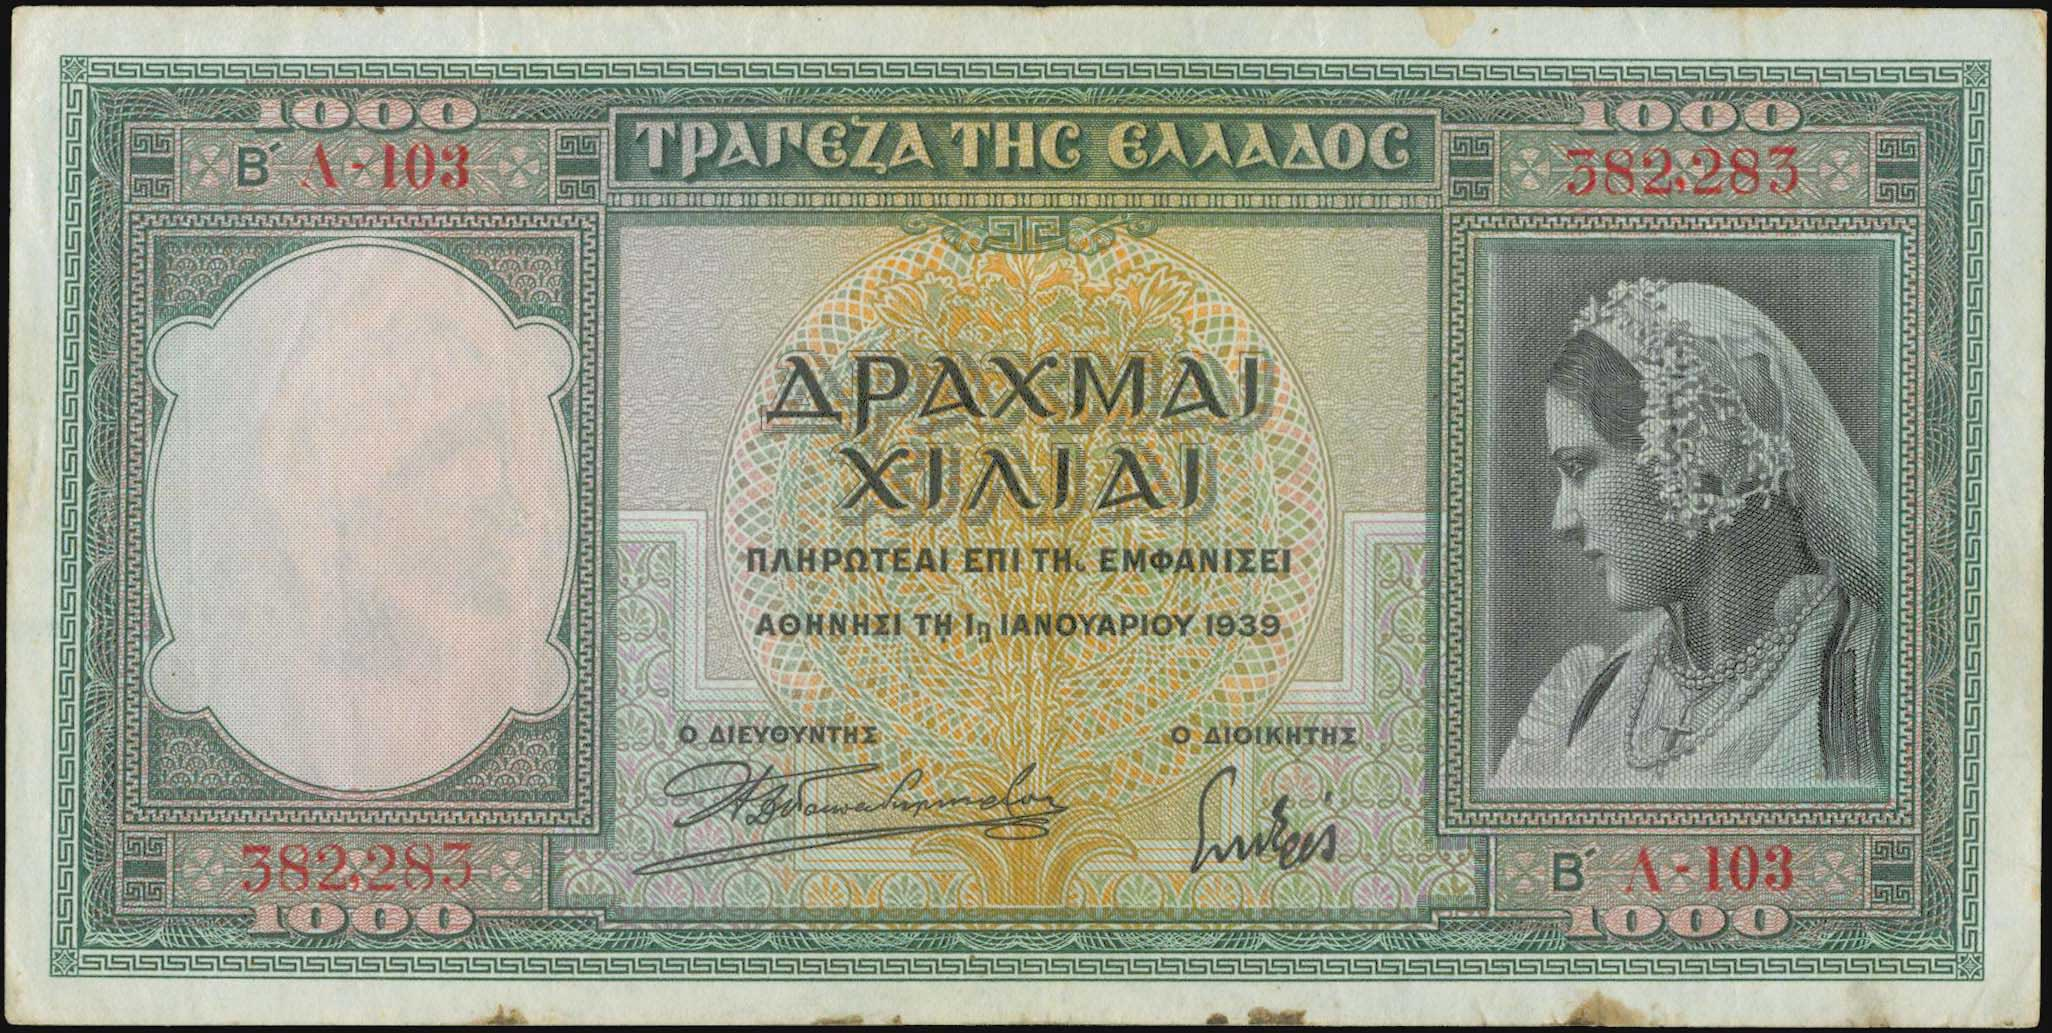 Lot 9305 - GREECE-  PAPER MONEY - BANKNOTES bank of greece (regular issues) -  A. Karamitsos Public & LIVE Bid Auction 610 Coins, Medals & Banknotes